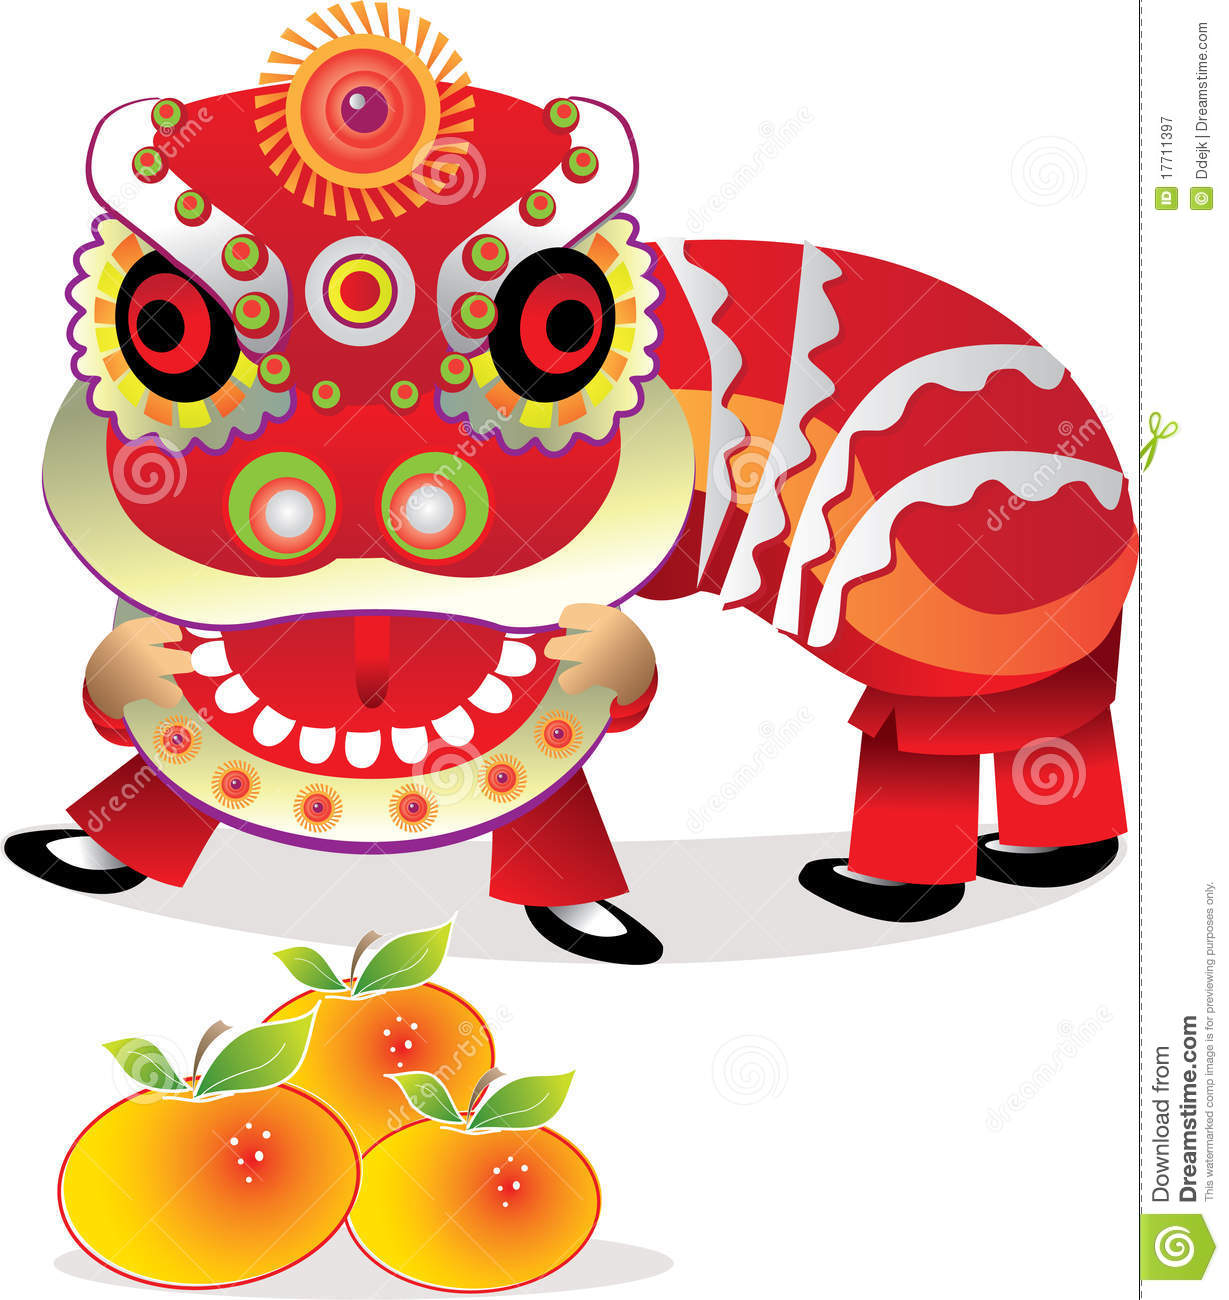 Lunar new year clipart free.